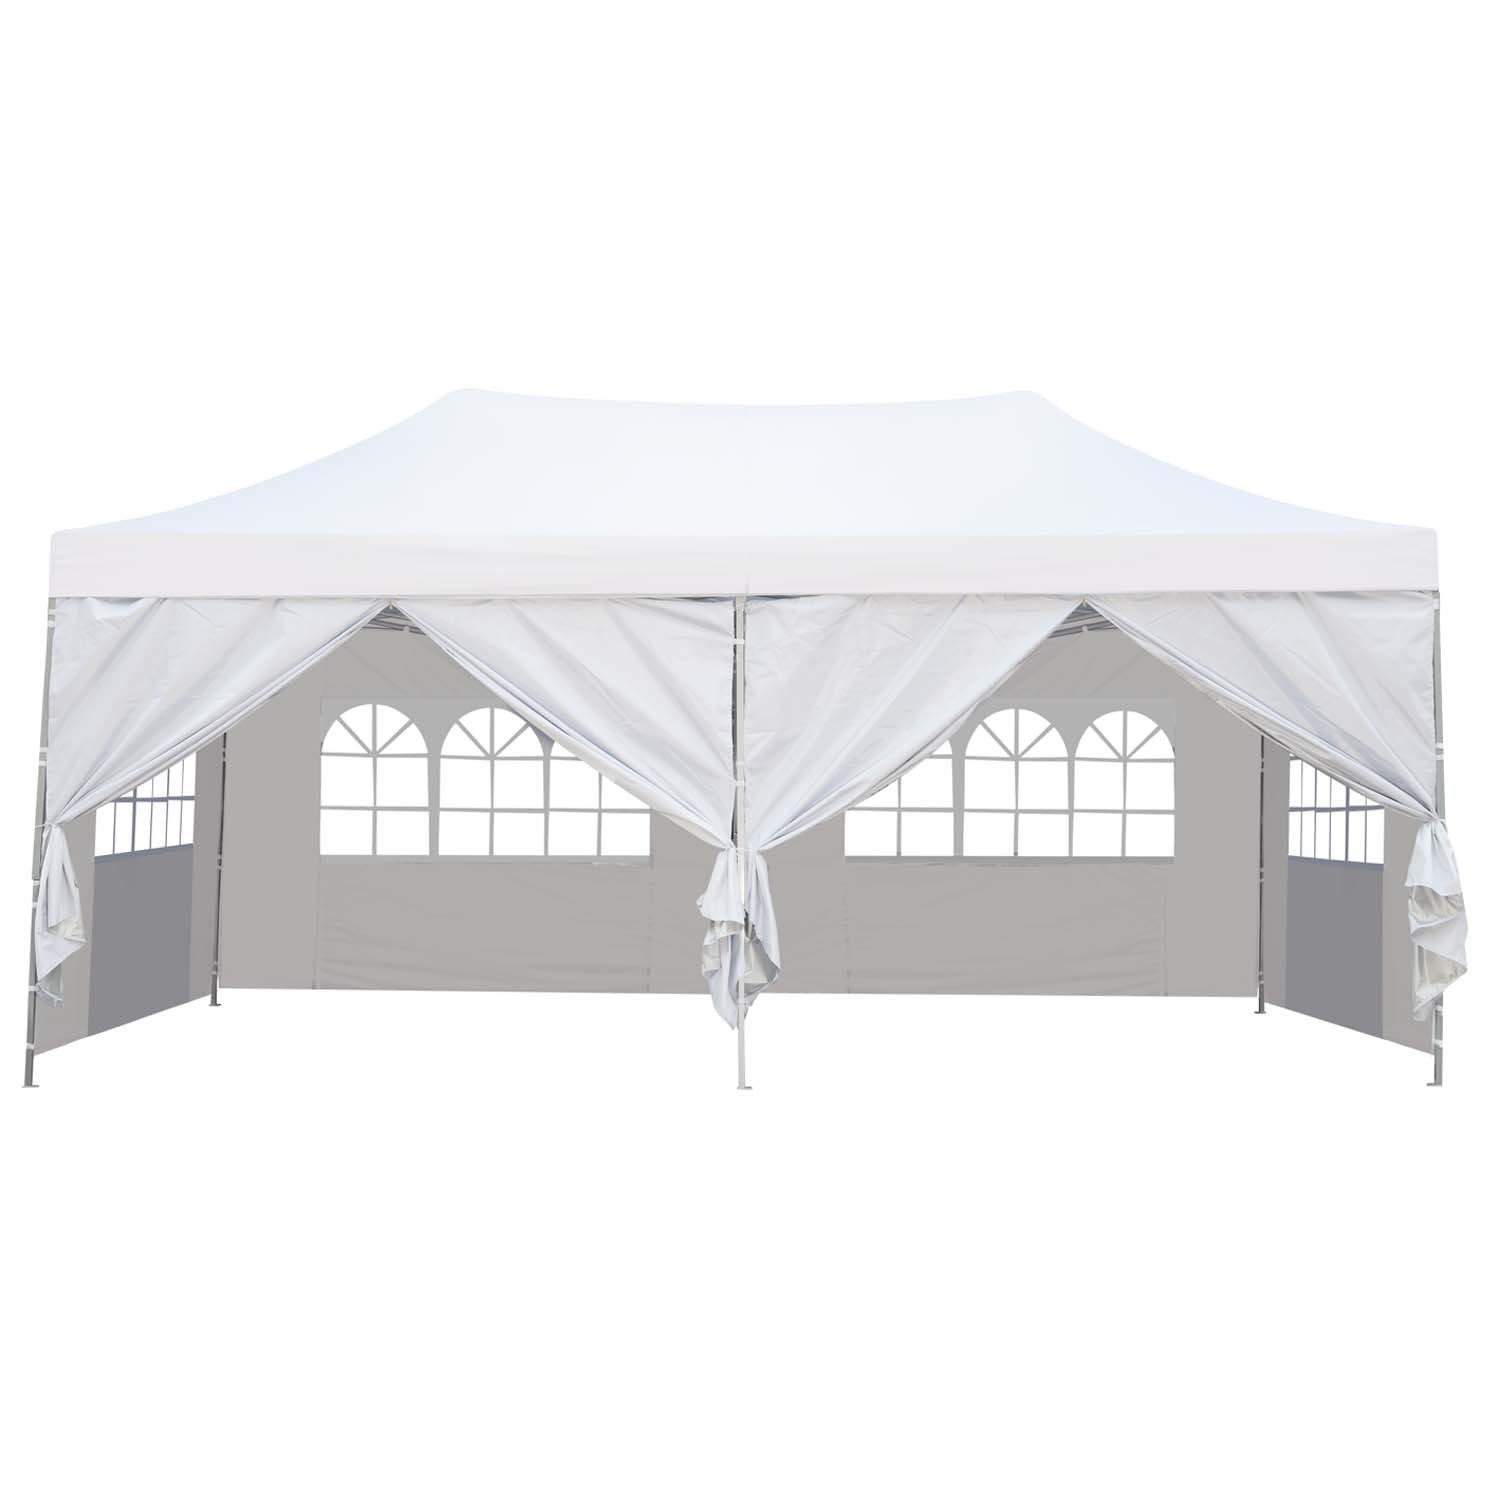 Outdoor Basic 10x20 Ft Pop up Canopy Party Wedding Gazebo Tent Shelter with Removable Side Walls White by Outdoor Basic (Image #2)